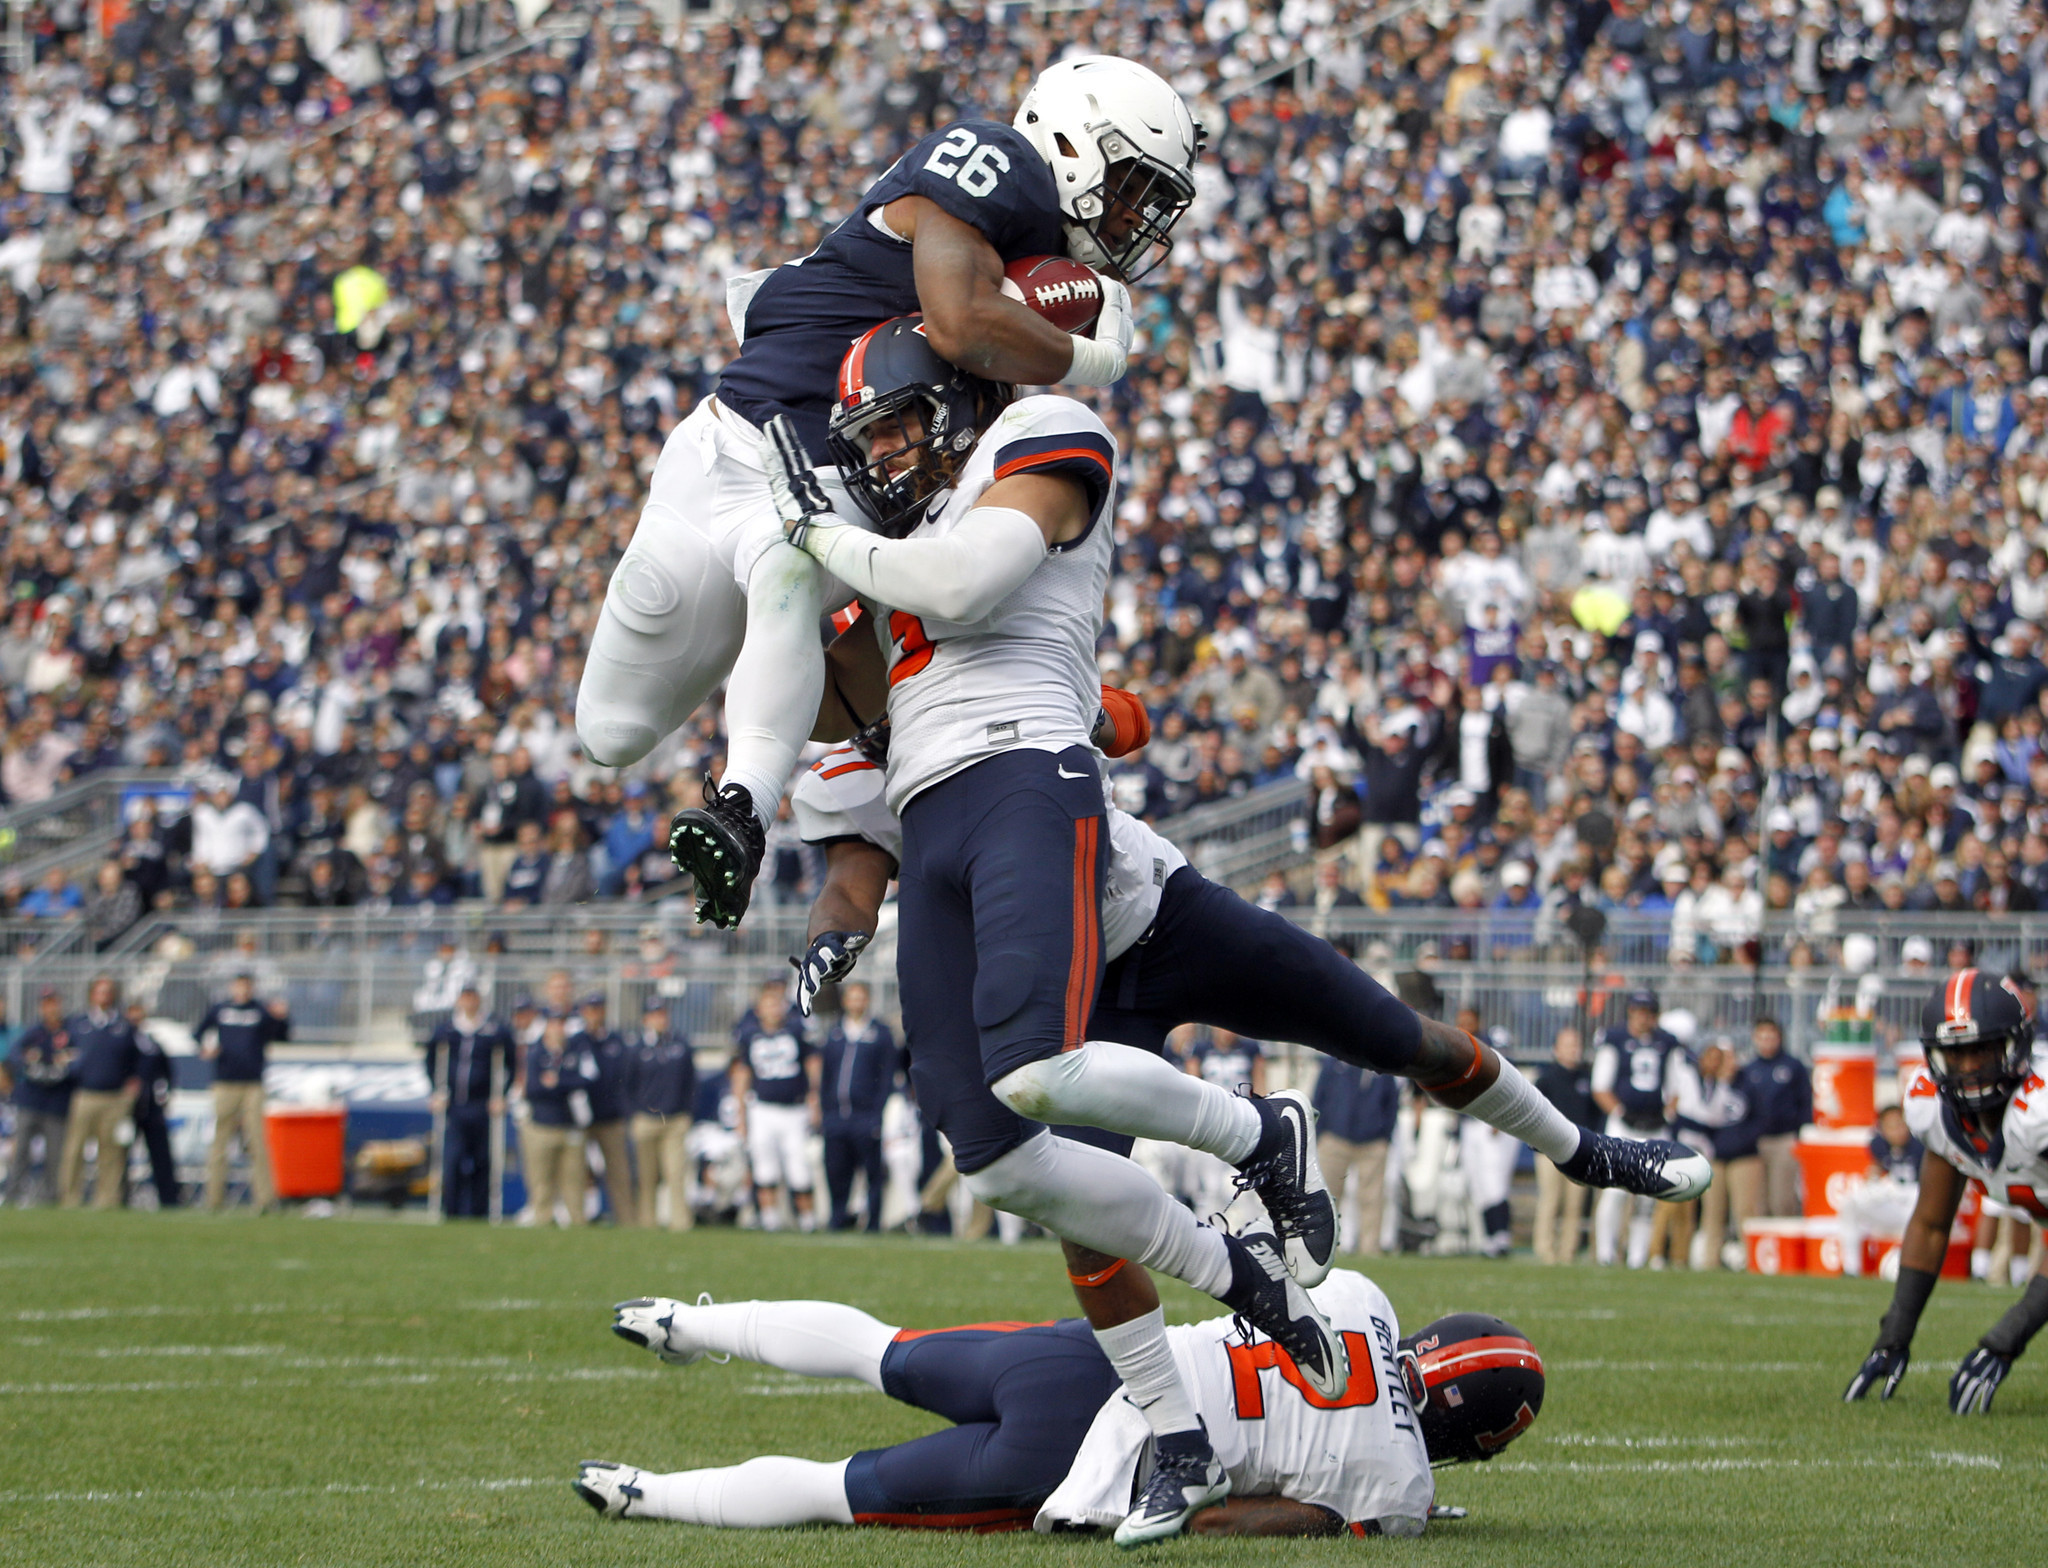 Saquon Barkley Setting More Records At Penn State The